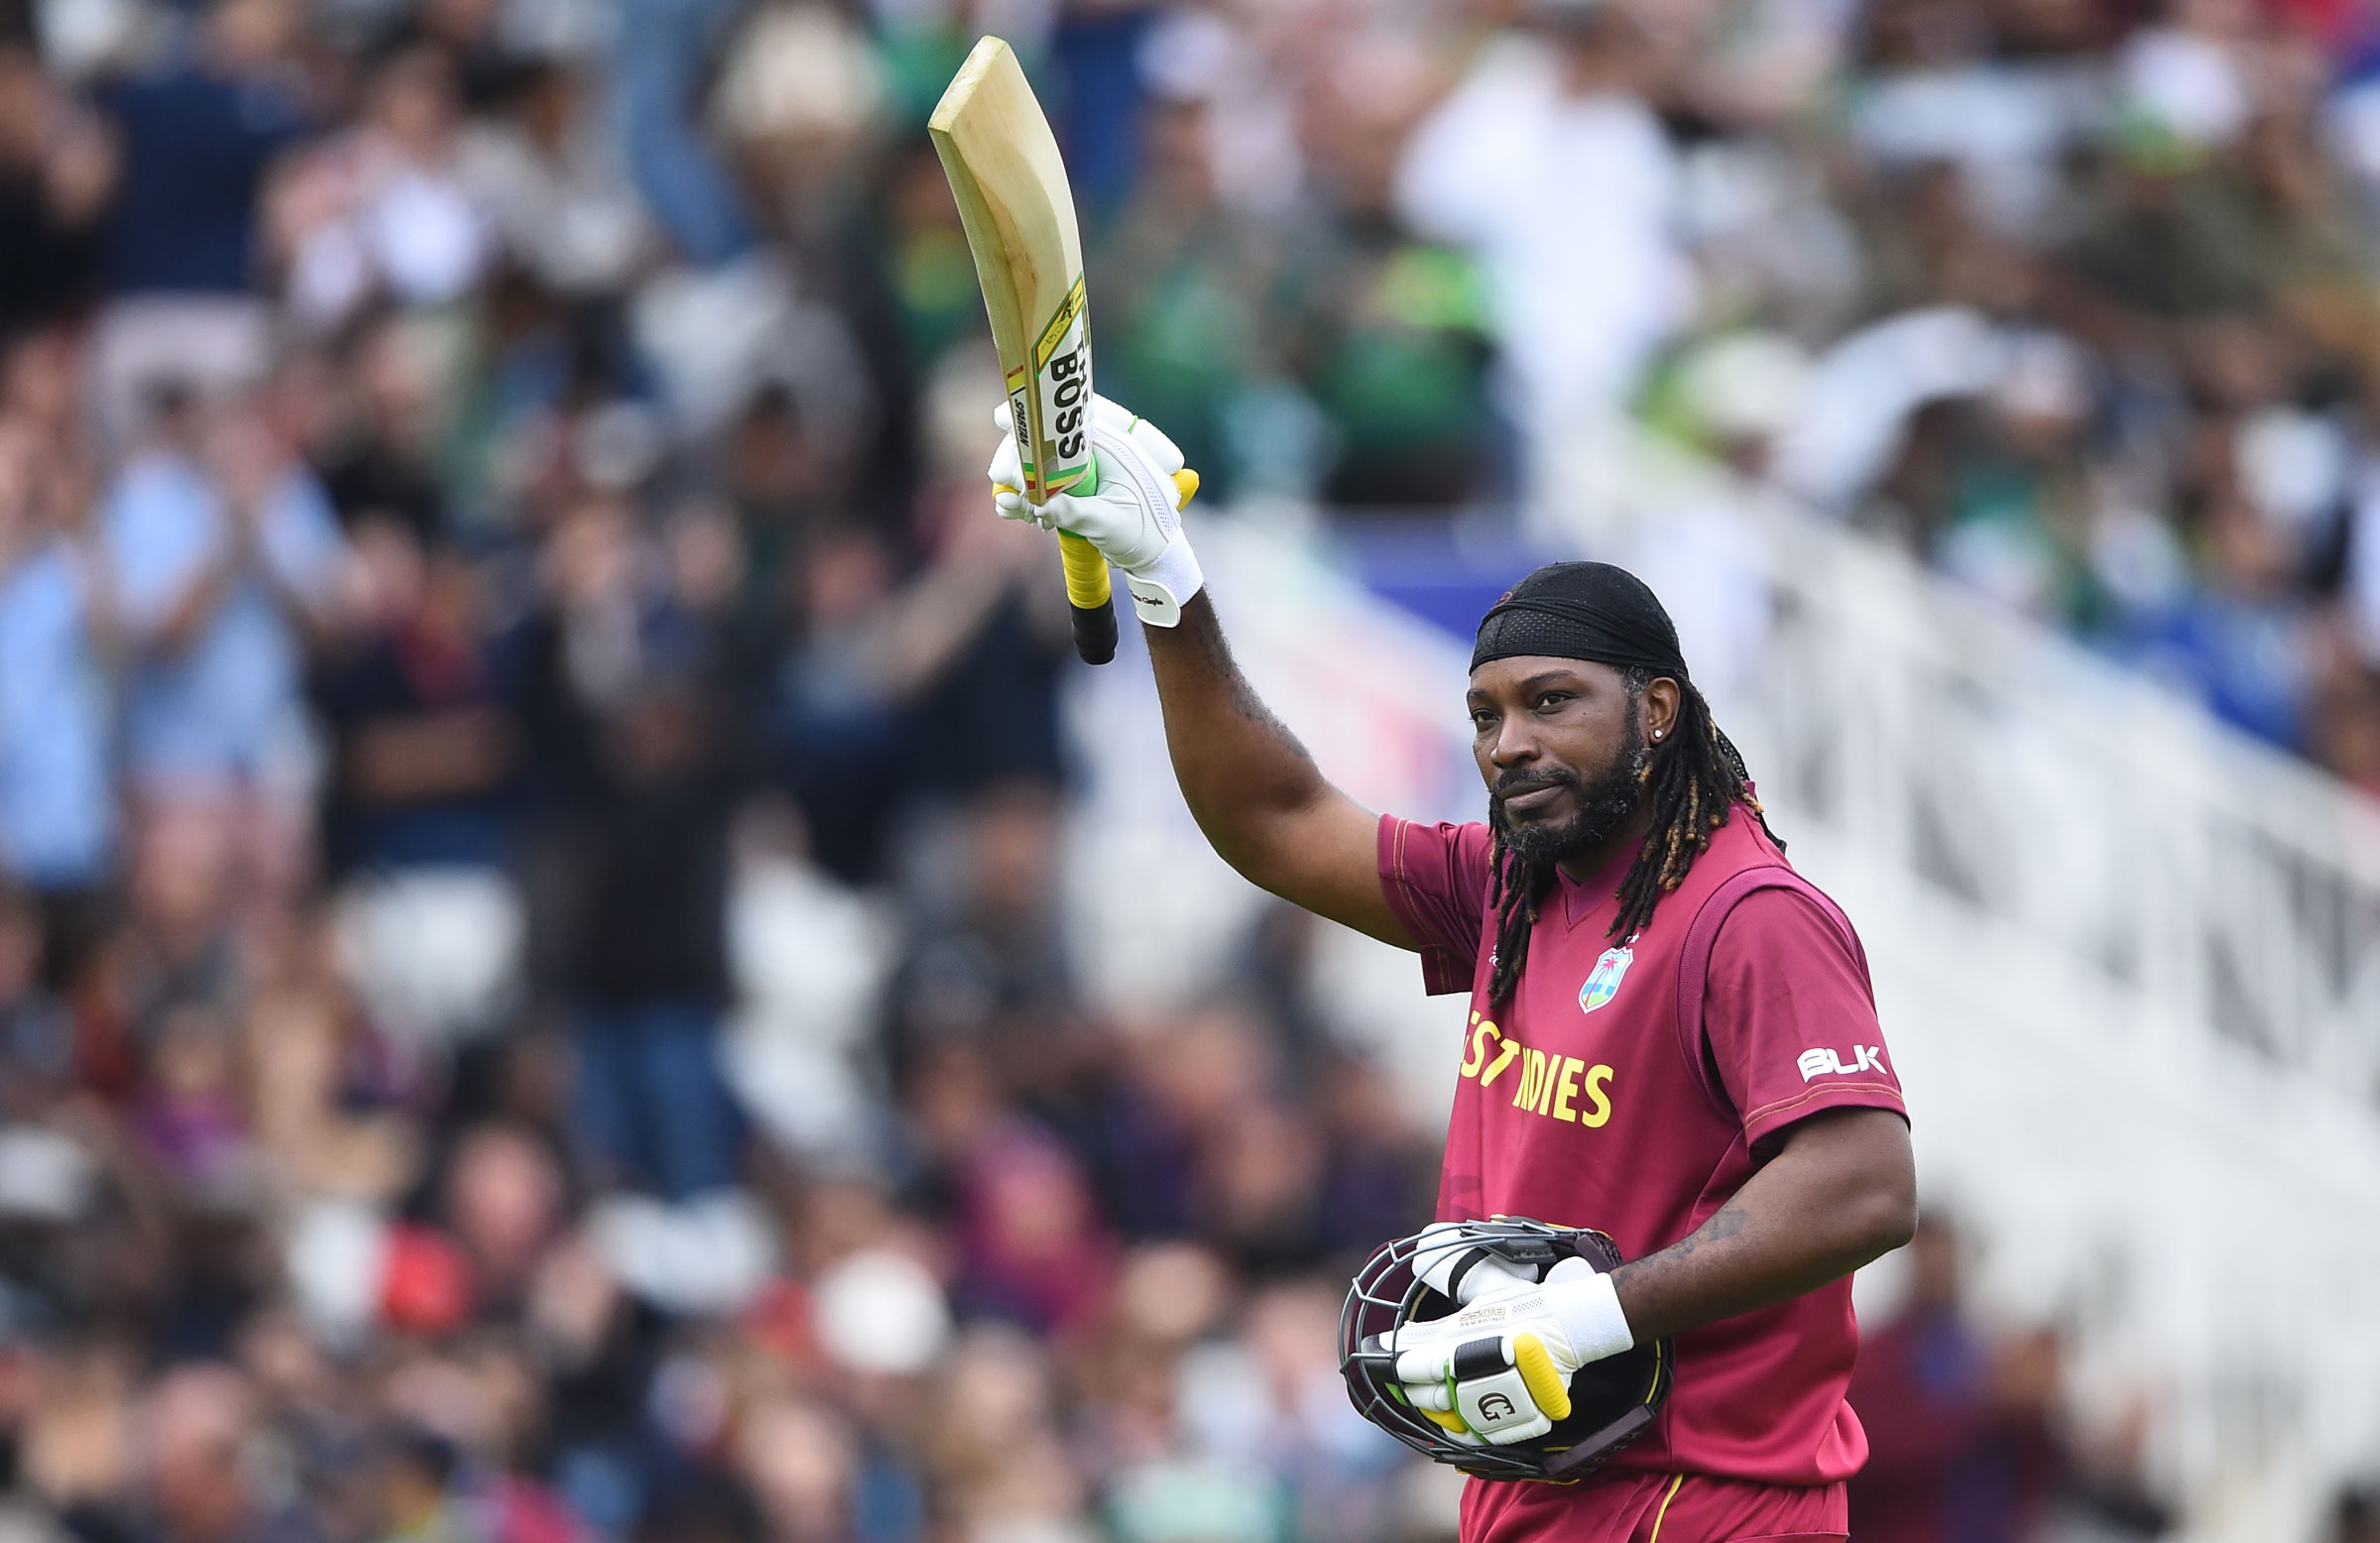 Chris Gayle produced an entertaining fifty // Getty